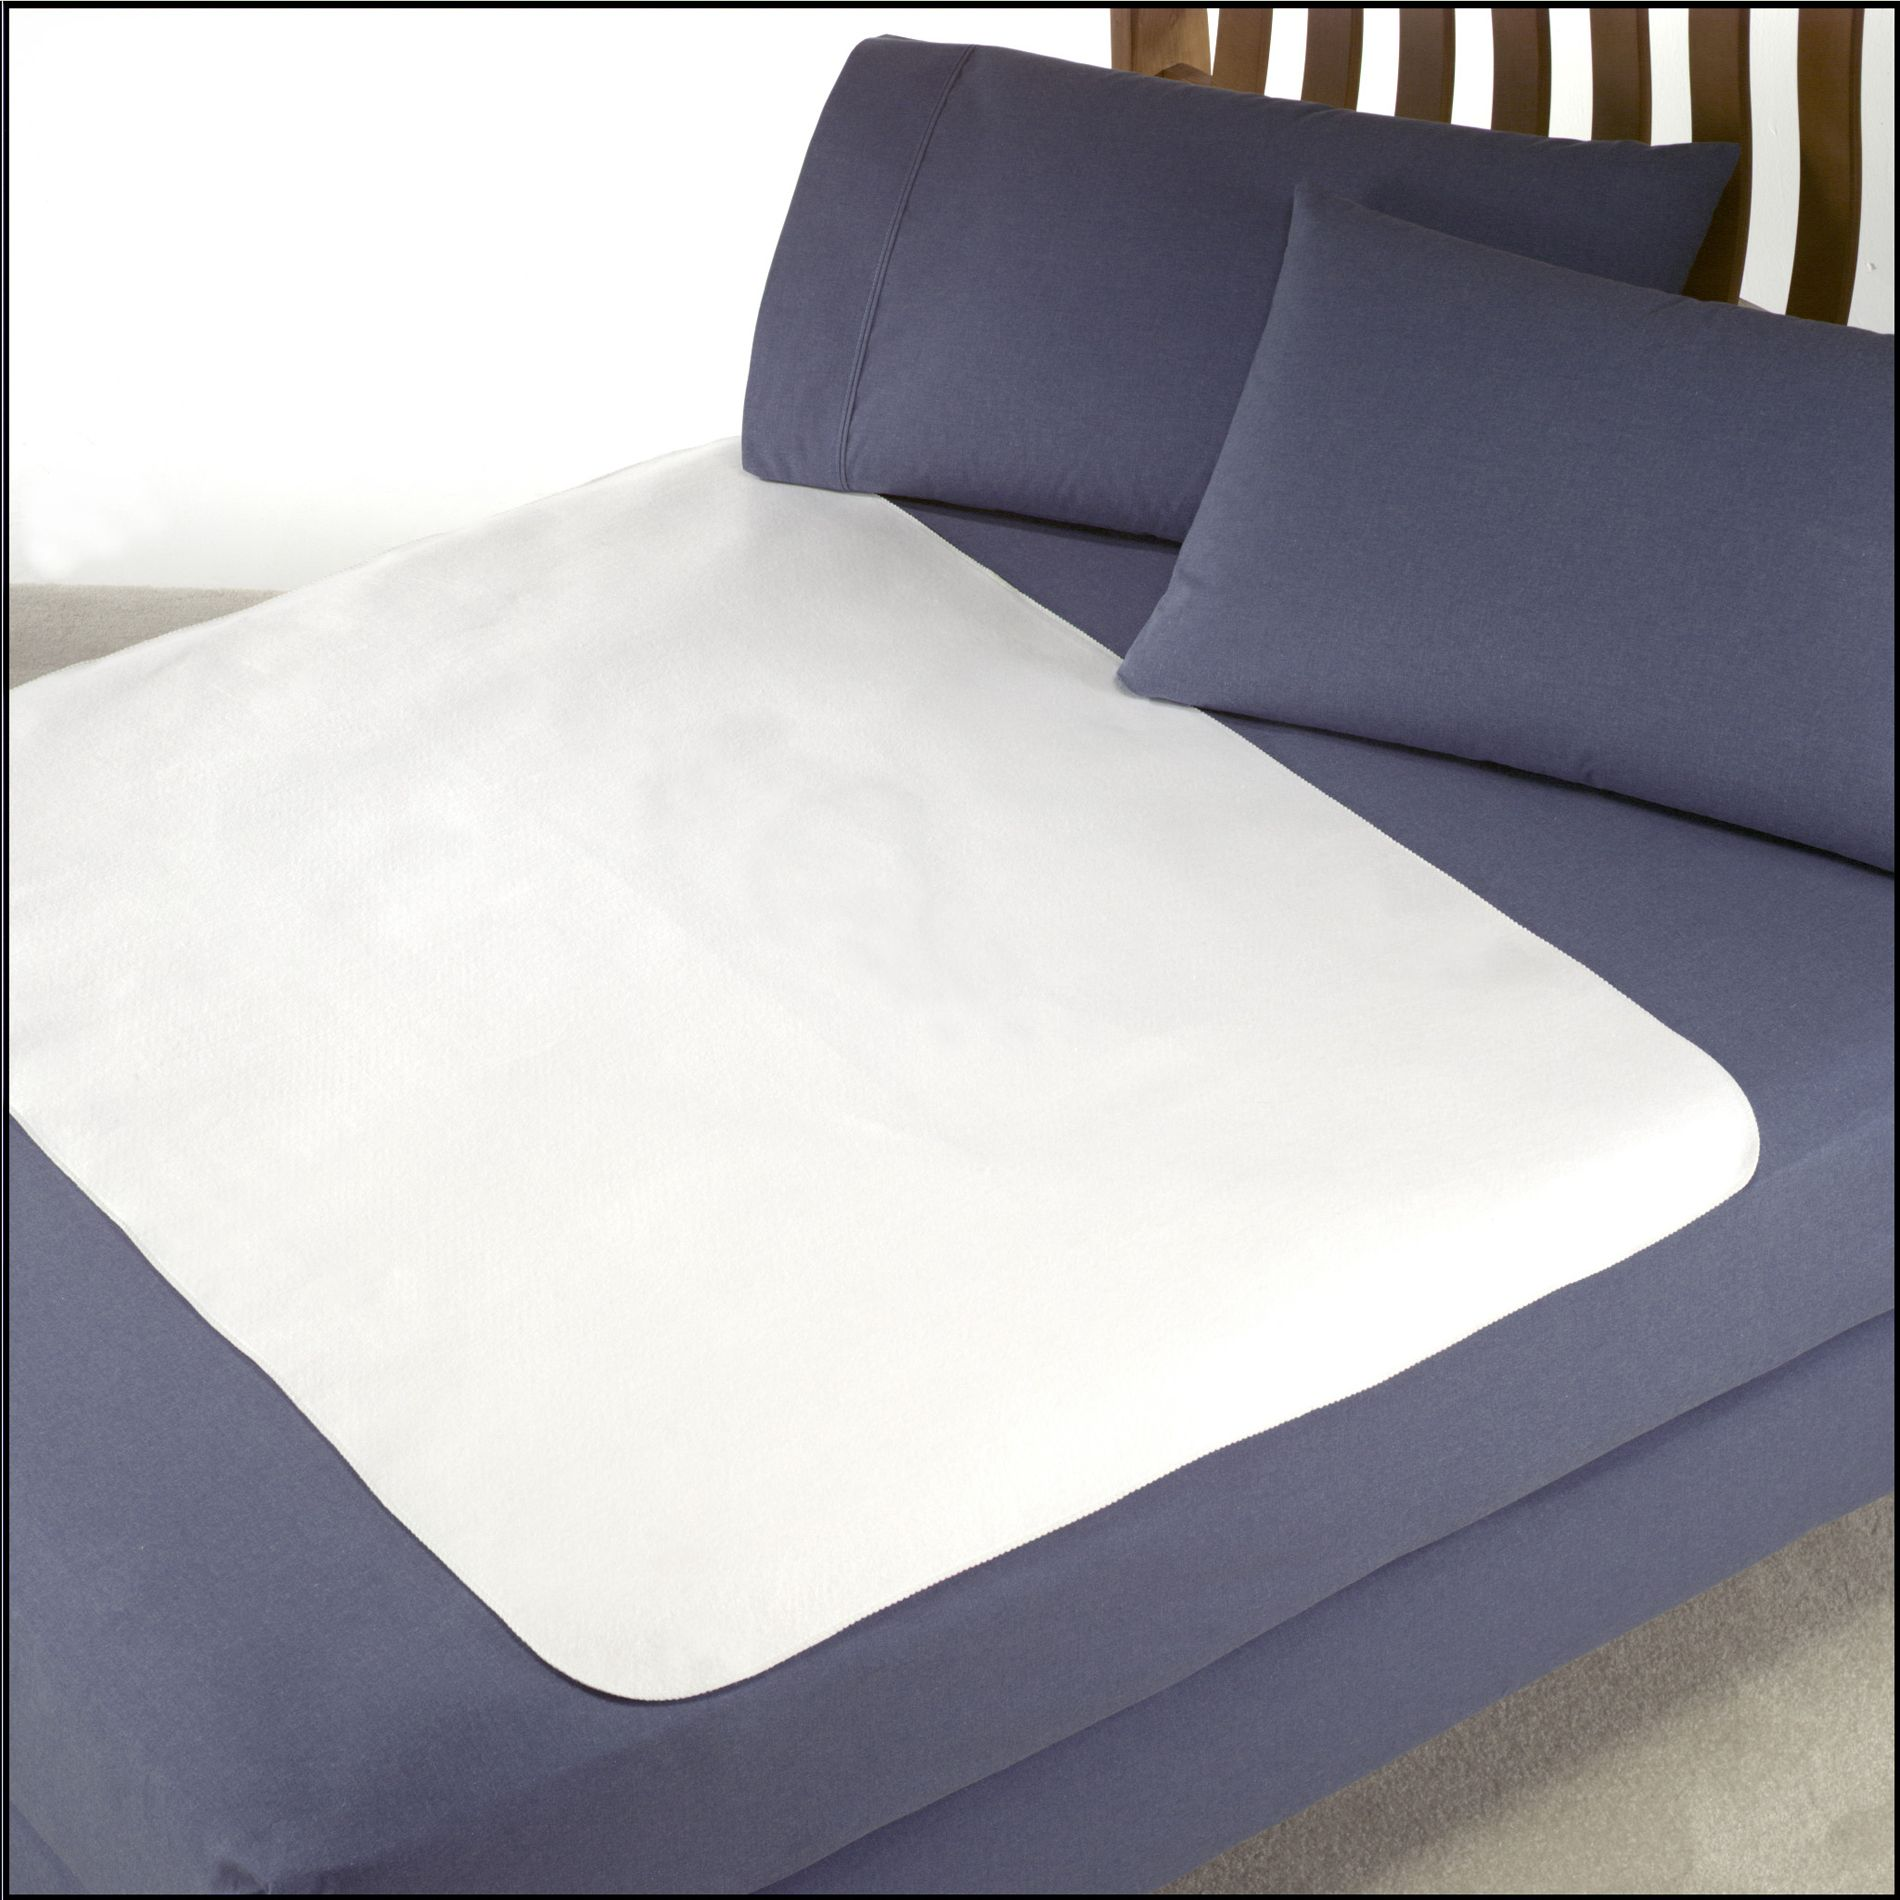 Cannon Waterproof Underpad Mattress Pad - Home - Bed & Bath - Bedding  Basics - Mattress Pads & Pillows - Mattress Pads & Protectors